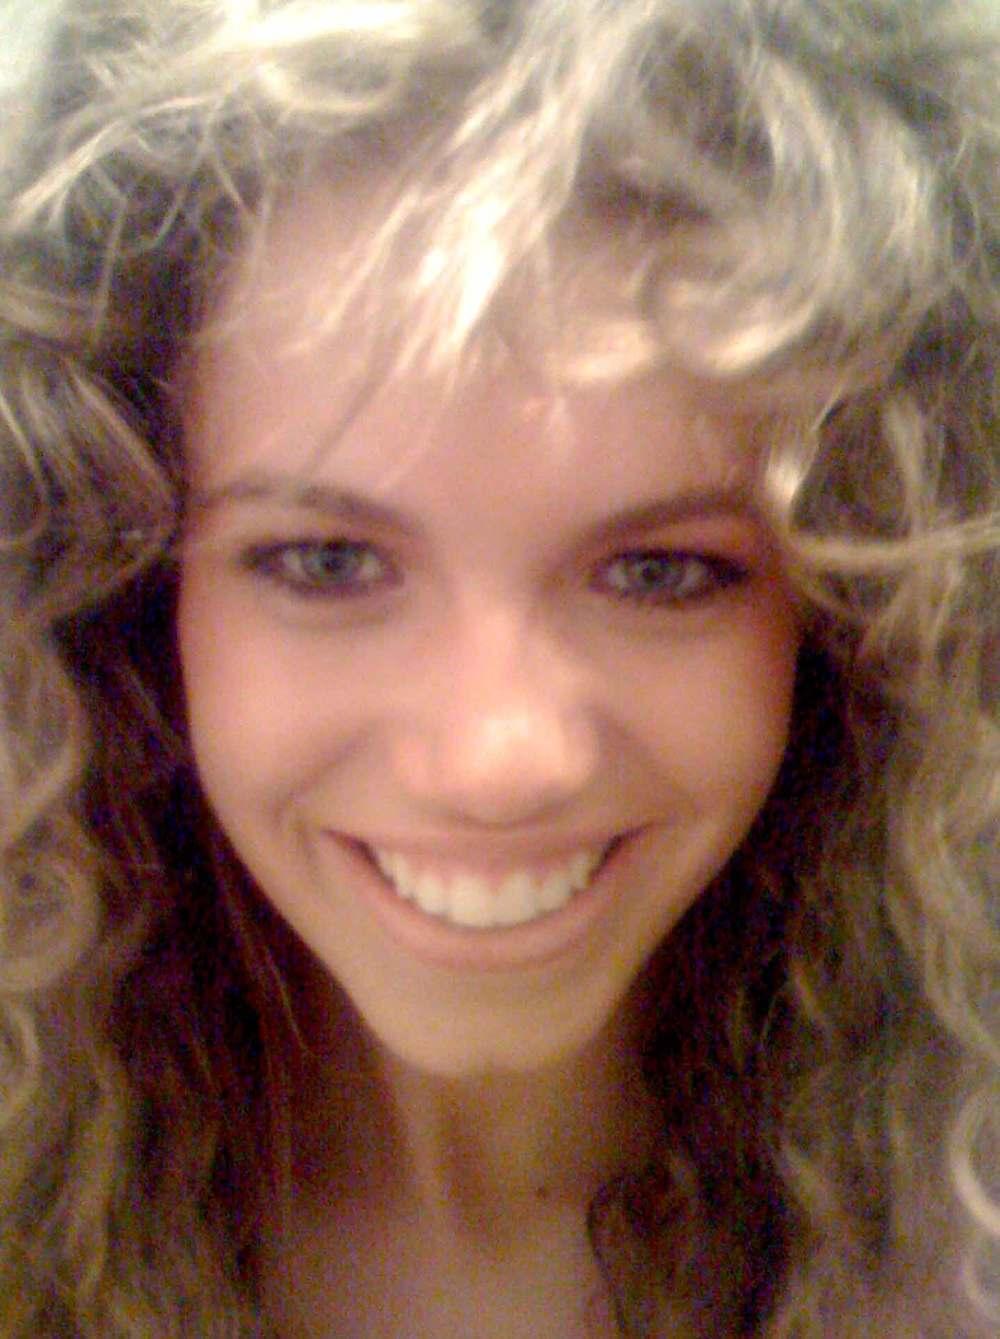 14-year-old Hailey Clauson at Genlux shoot on January 28, 2009.